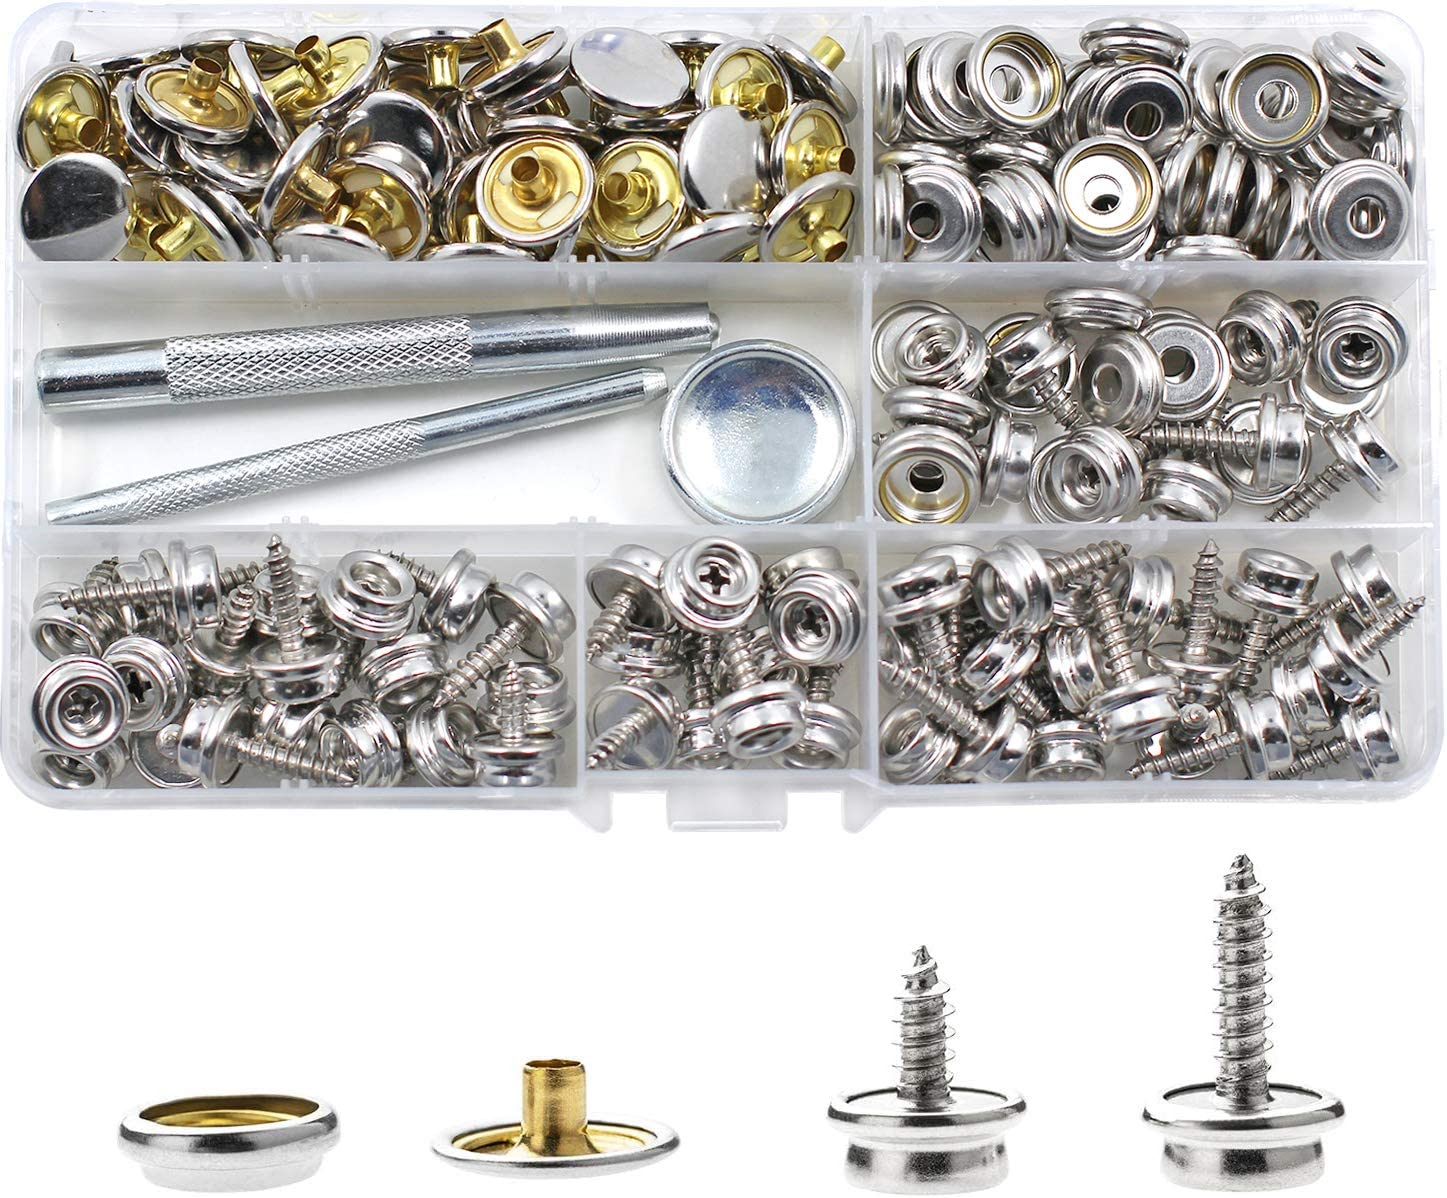 180 Pieces Canvas Ranking TOP14 Sale special price Snap Kit BetterJonny Stainless S Steel Screws